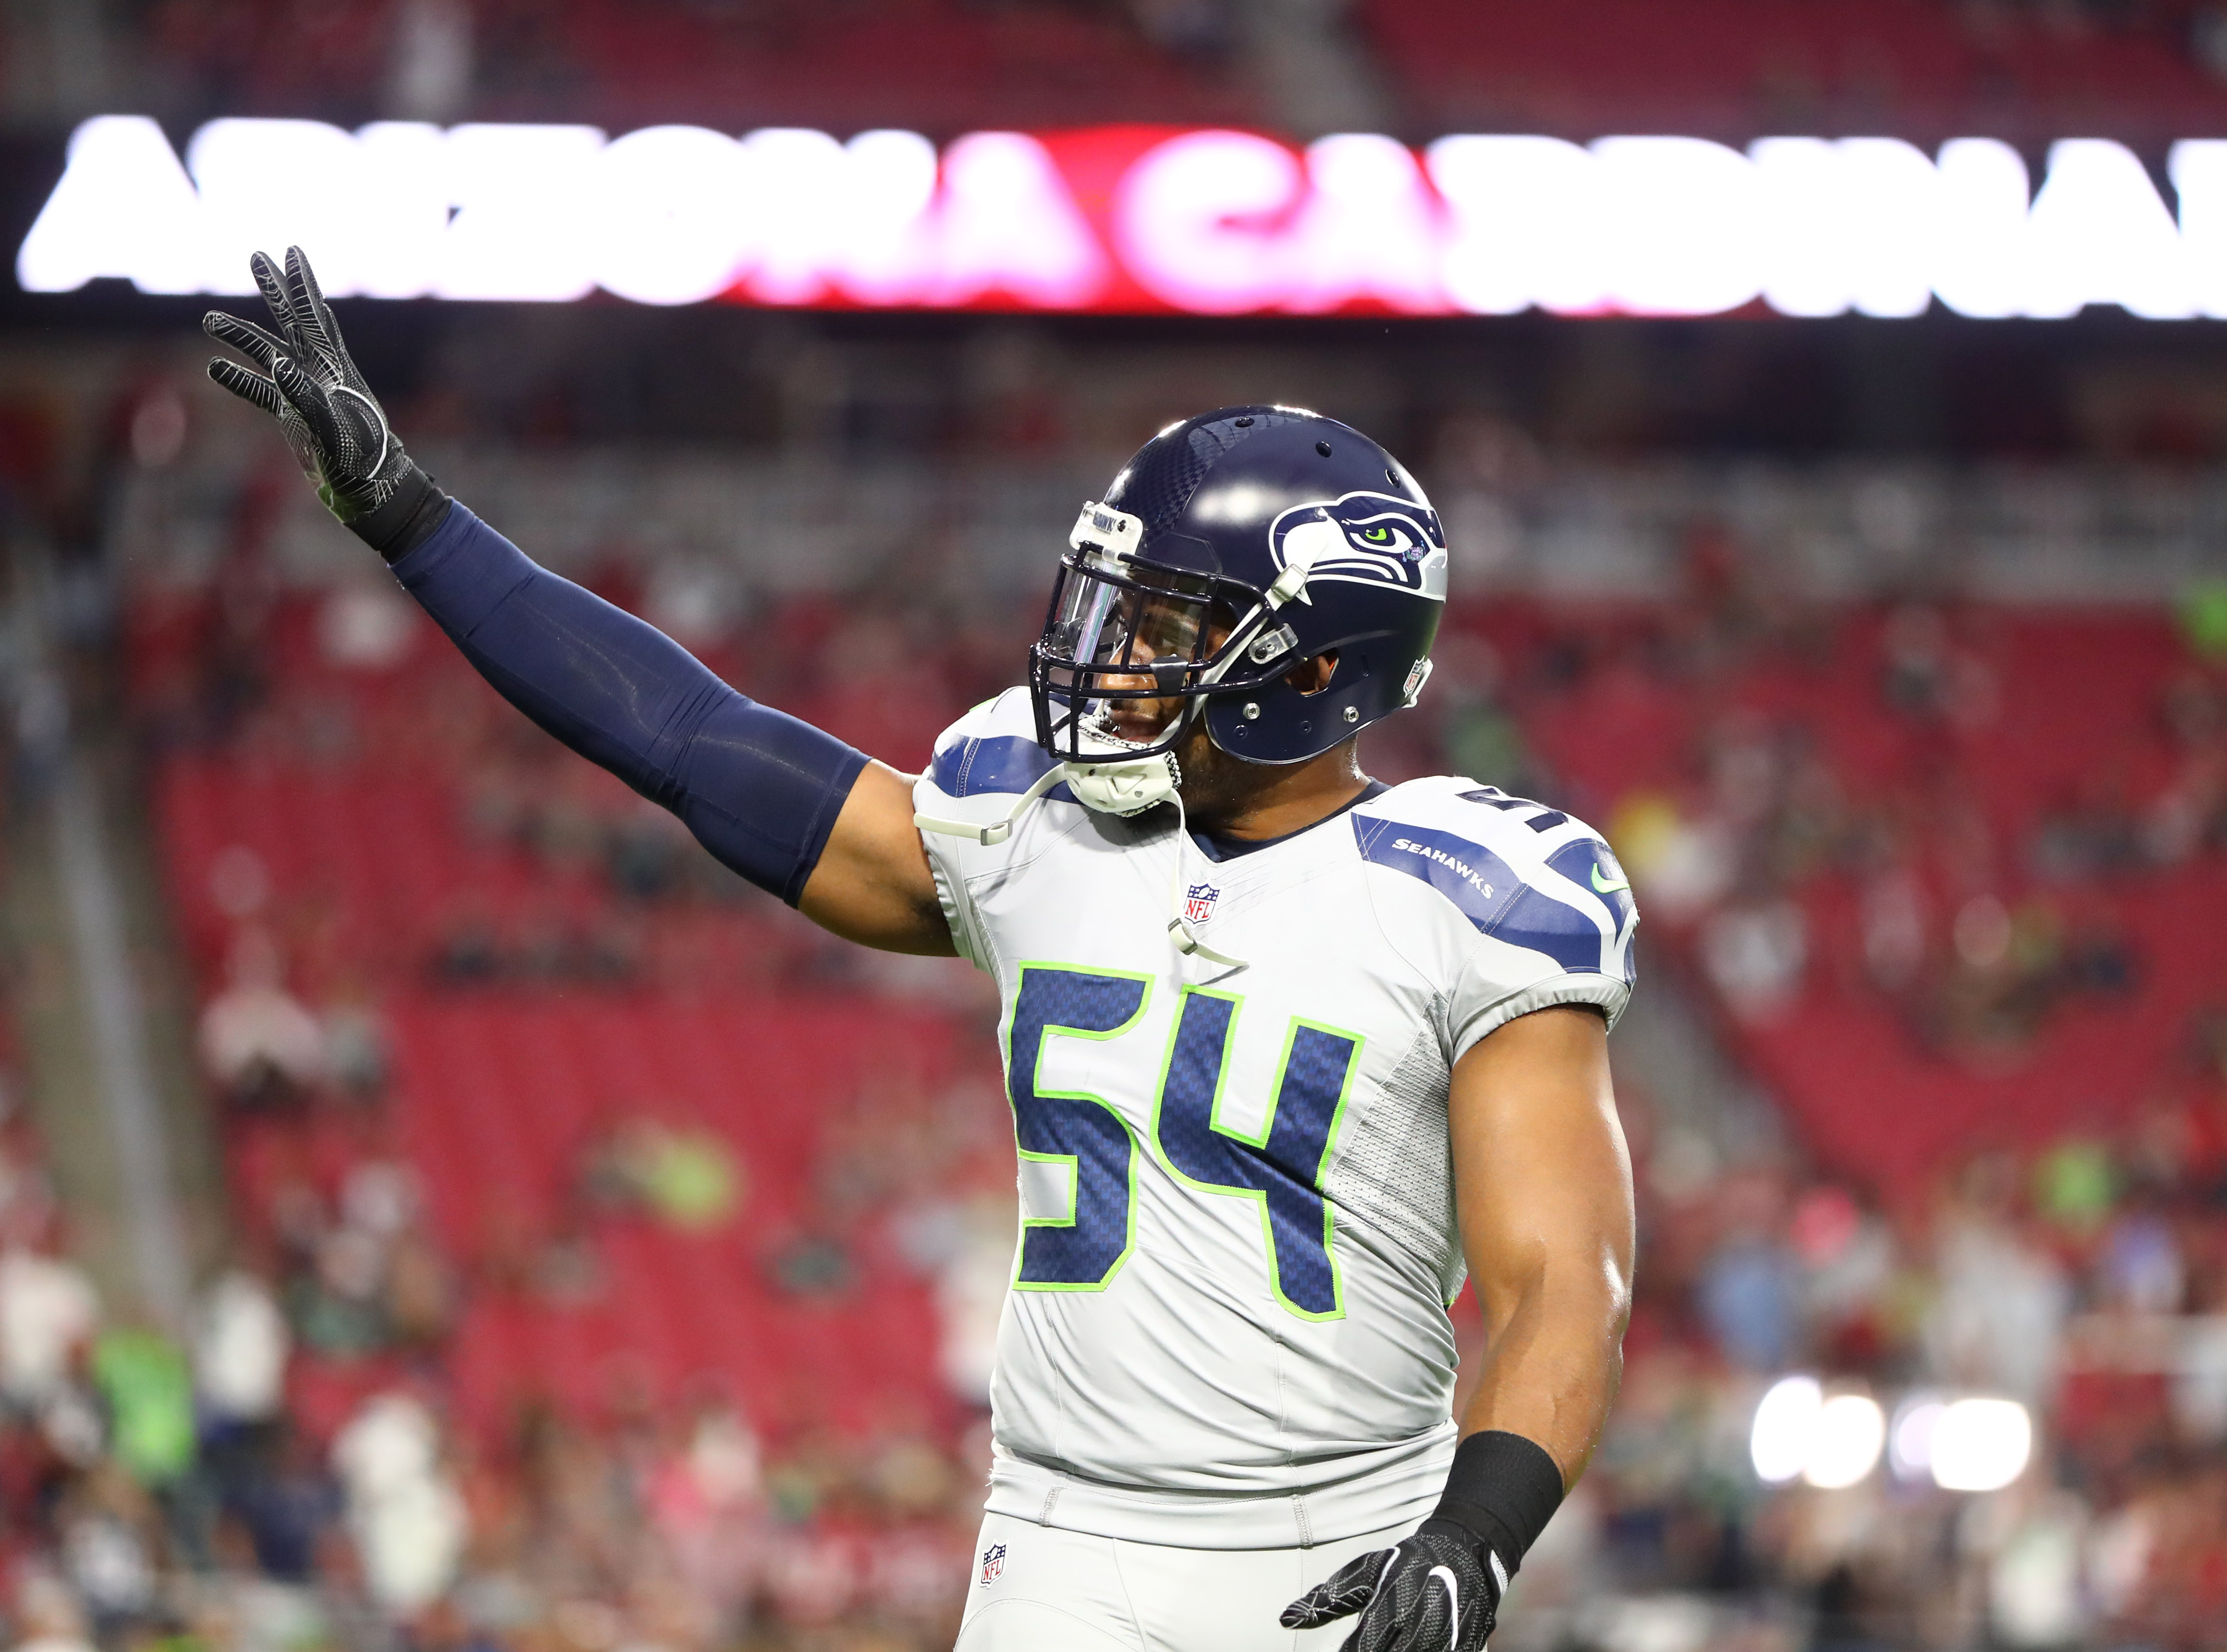 7a48420d2 ... Seahawks linebacker Bobby Wagner (54) reacts against the Arizona  Cardinals at University of Phoenix Stadium. The game ended in a 6-6 tie  after overtime.